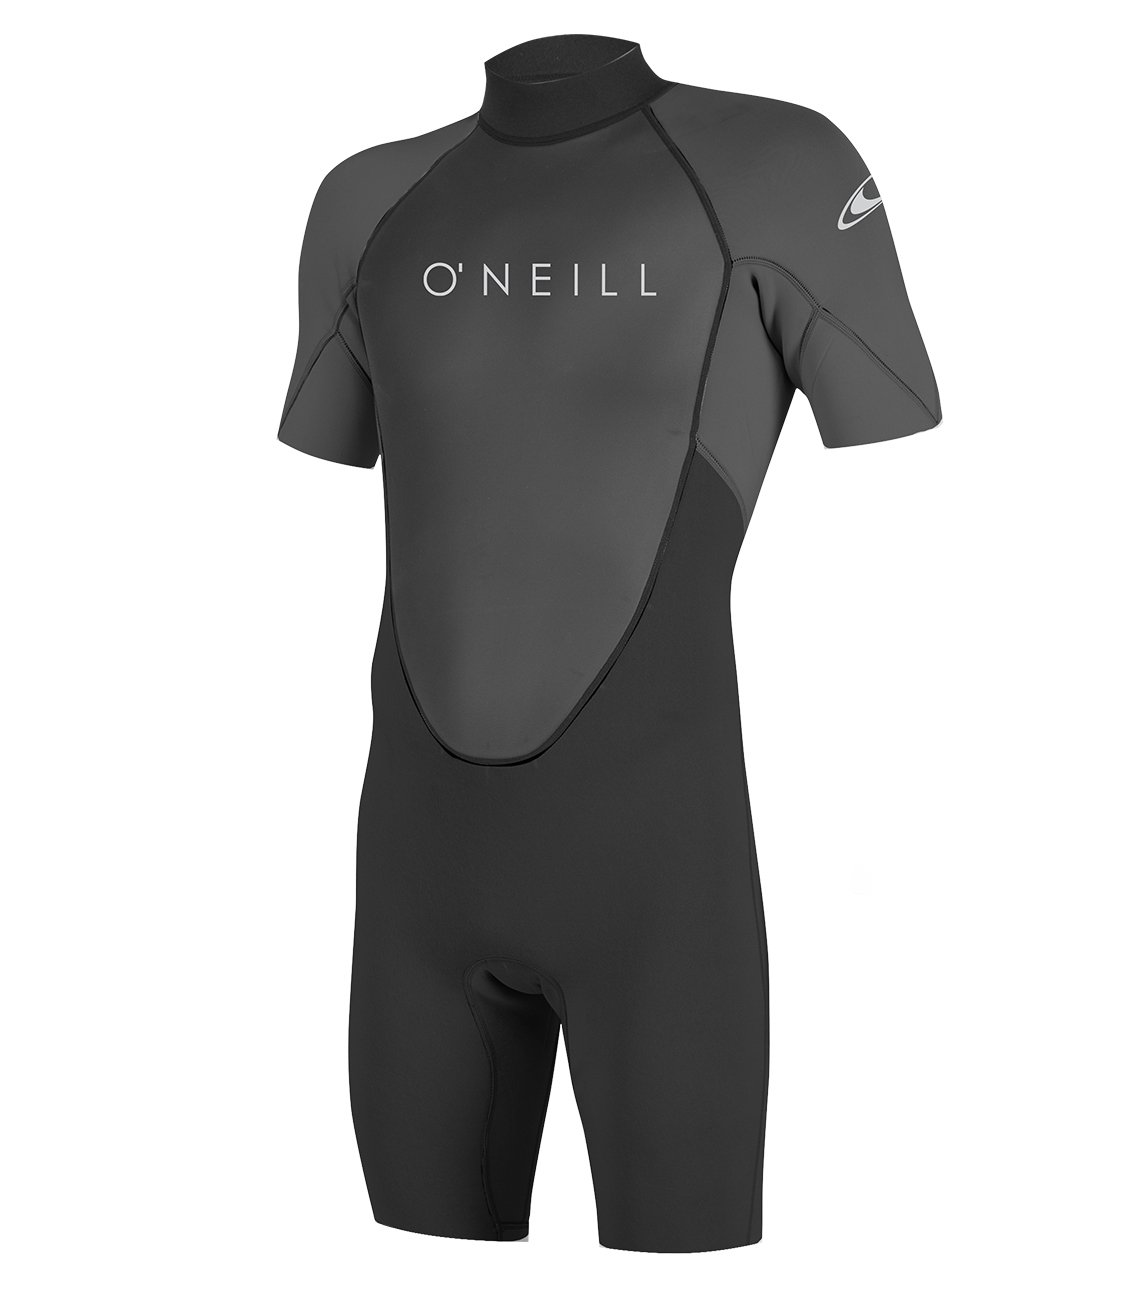 O'Neill Men's Reactor-2 2mm Back Zip Short Sleeve Spring Wetsuit, Black/Graphite, Medium Tall by O'Neill Wetsuits